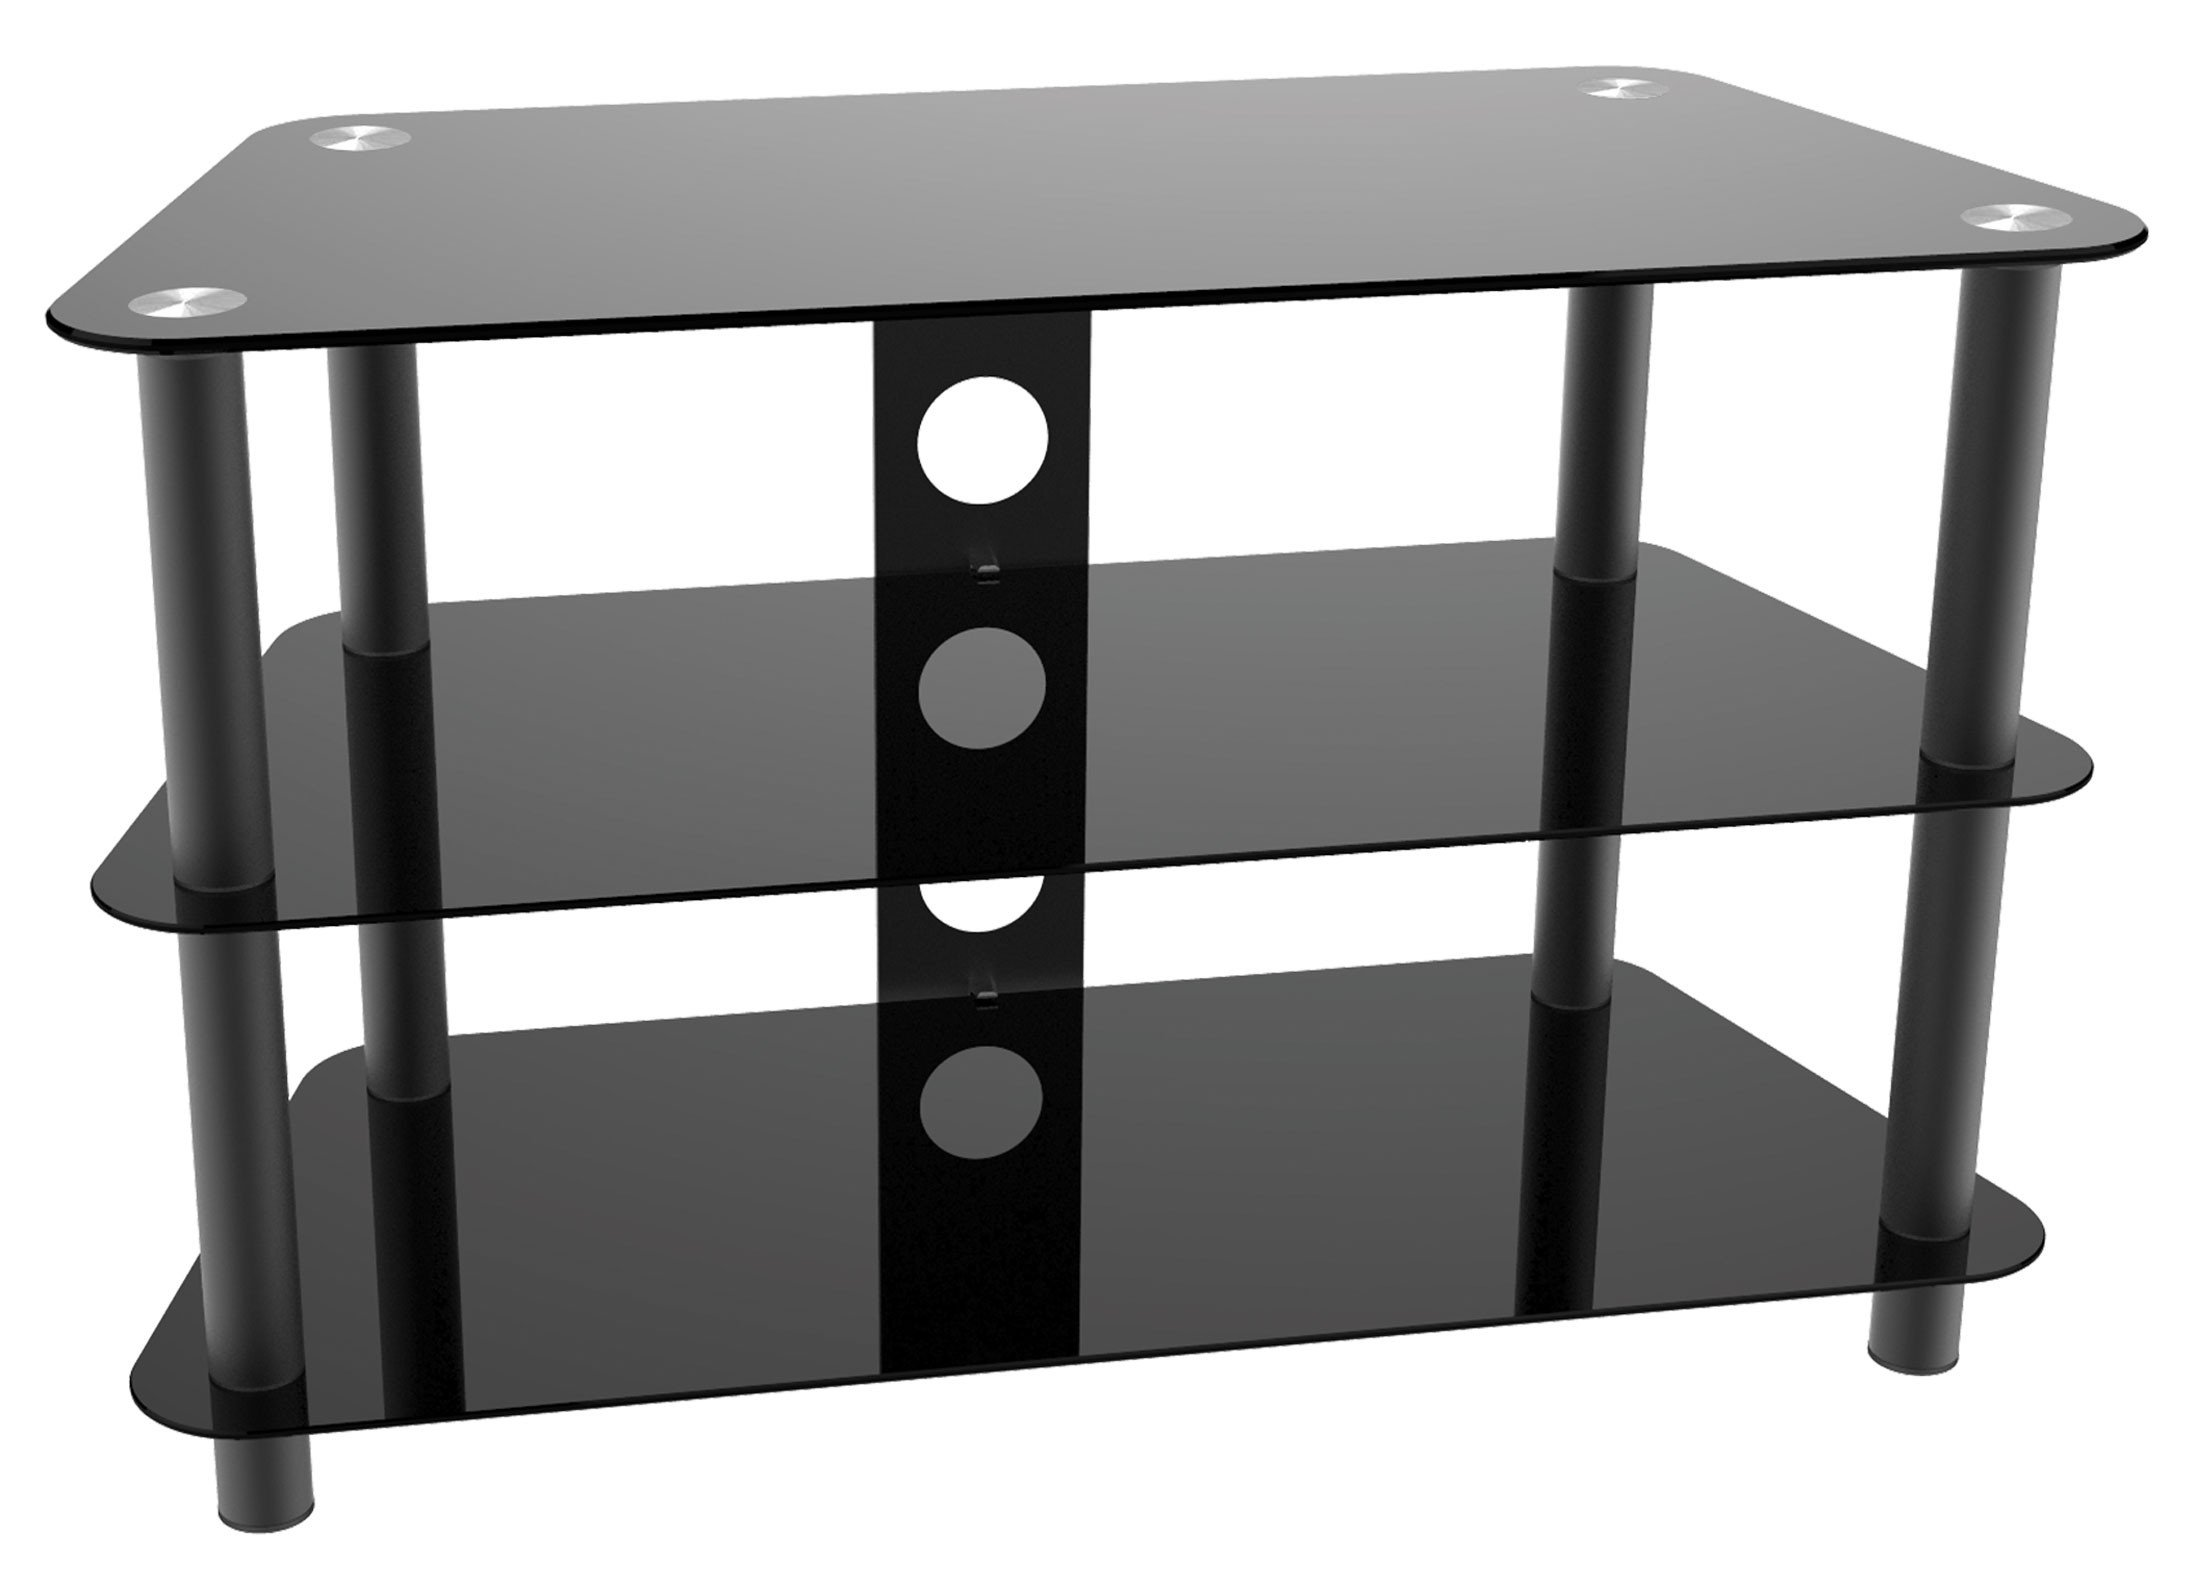 ricoo fernsehtisch ft502s universal lcd tv stand tisch regal rack curved qled qe 4k led oled